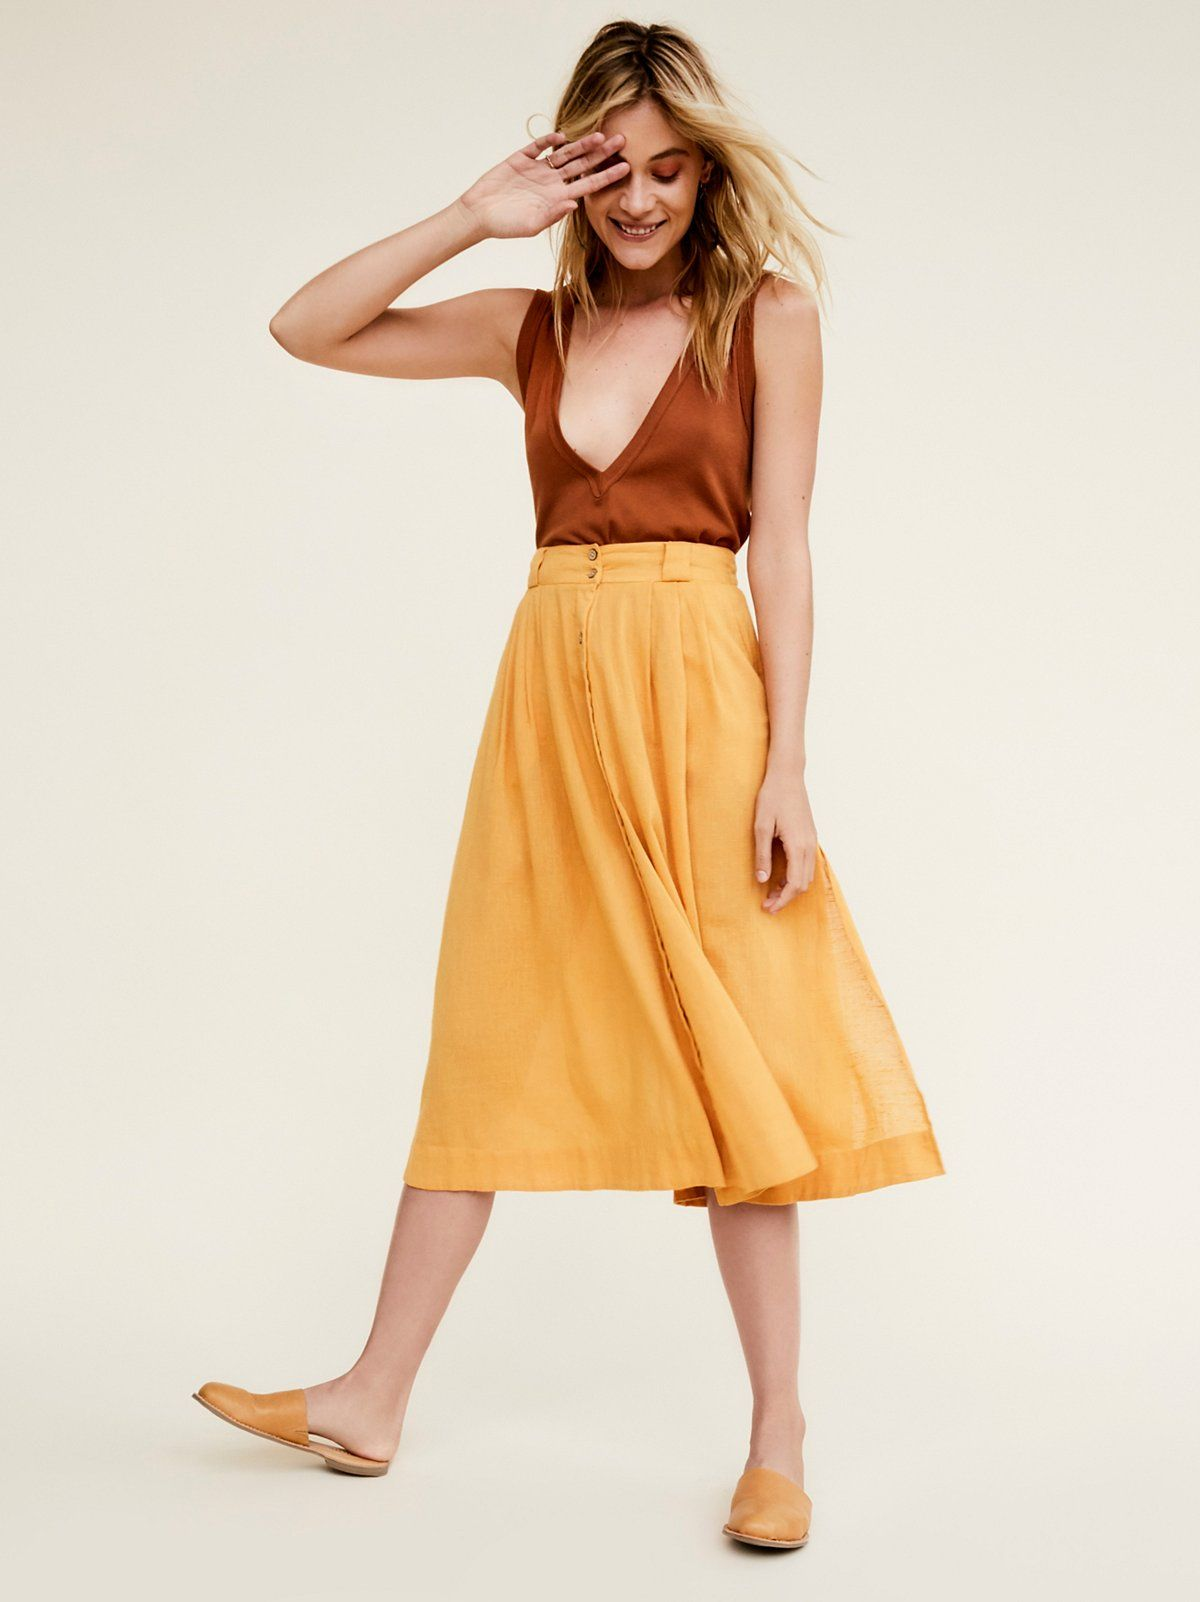 This That Skirt | Made from our sheer and gauzy Endless Summer fabric, this midi skirt features a buttonup front detail and high side slits for an effortless fit. Subtle pleating and hip pockets.